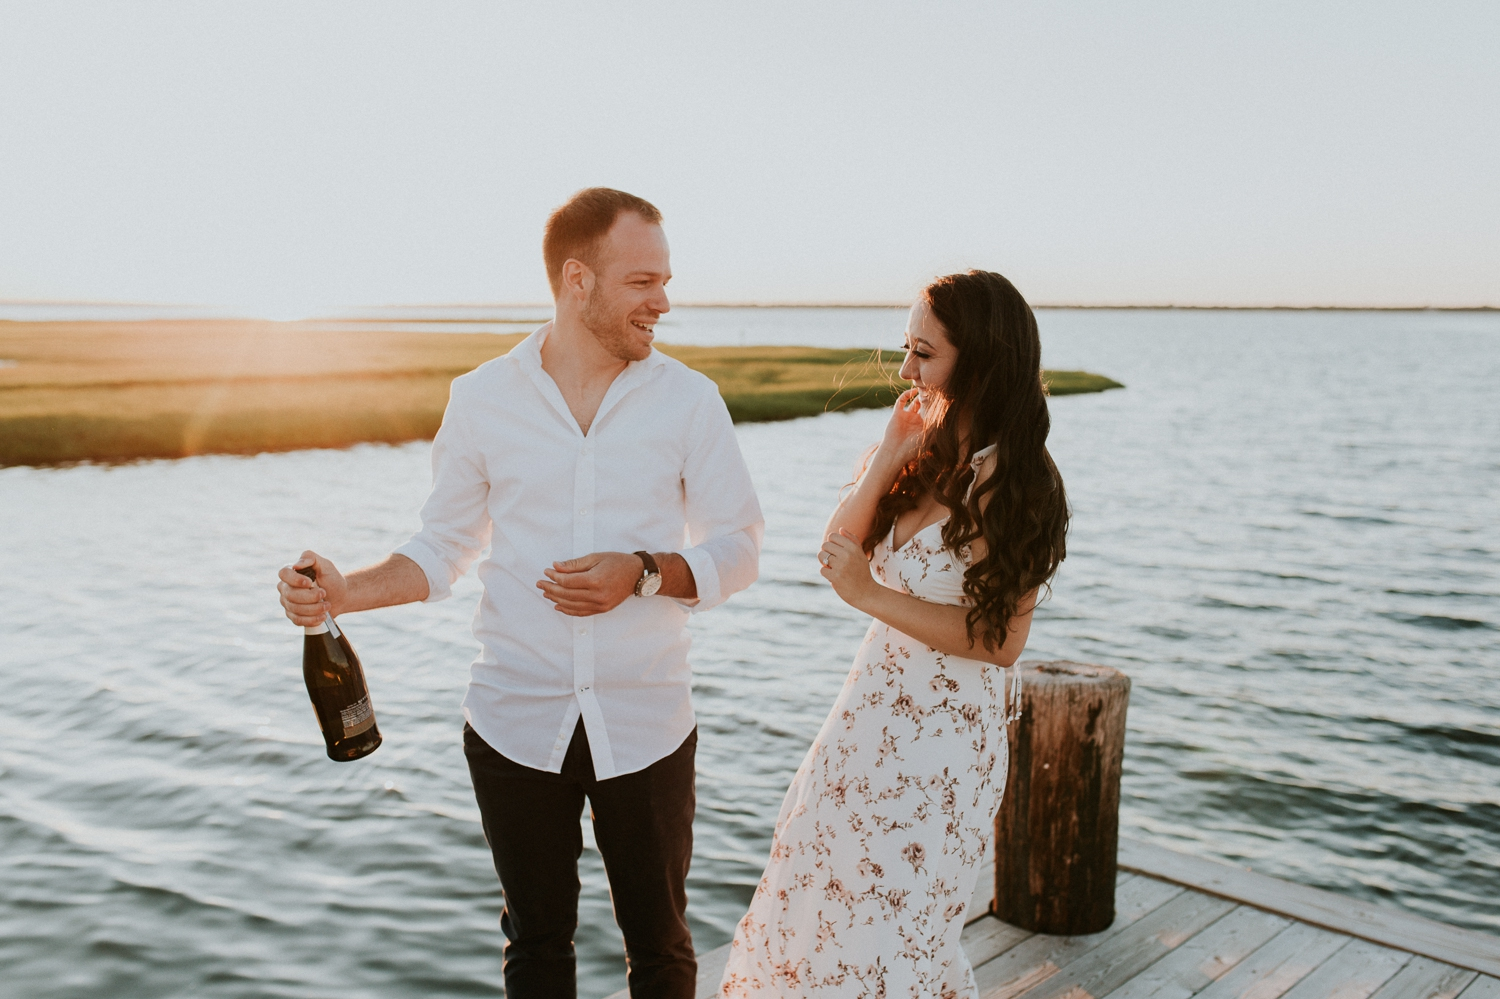 ho-hum-beach-boat-ride-engagement-photography-bellport-new-york 32.jpg